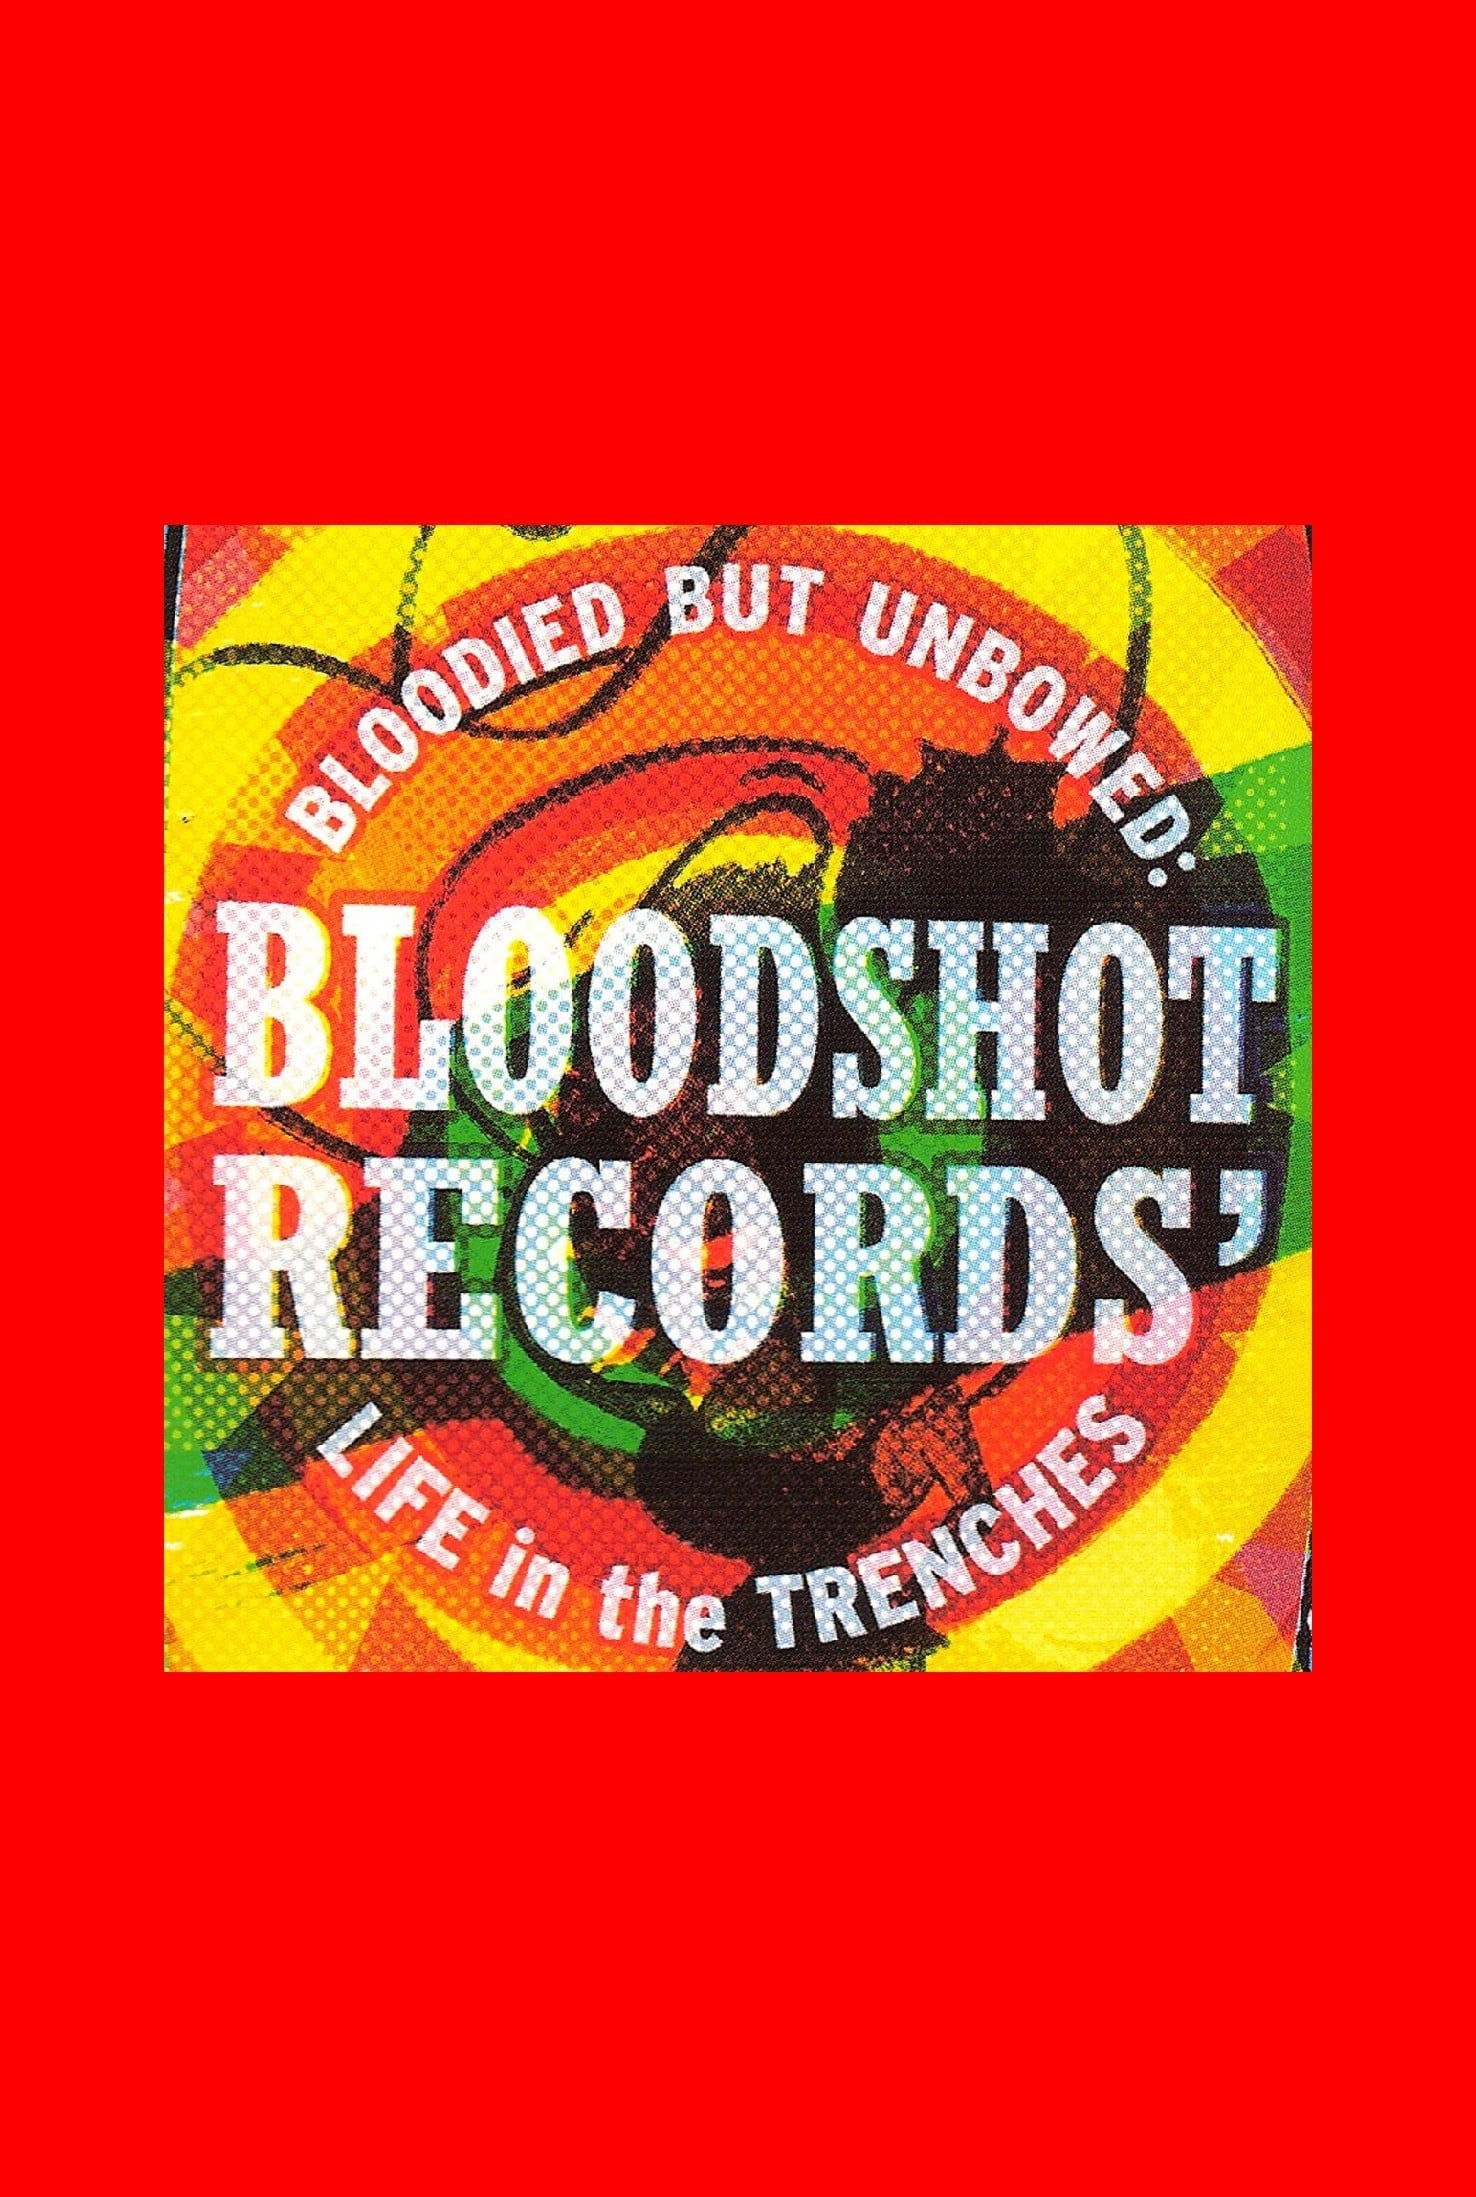 Bloodied But Unbowed: Bloodshot Records' Life In The Trenches